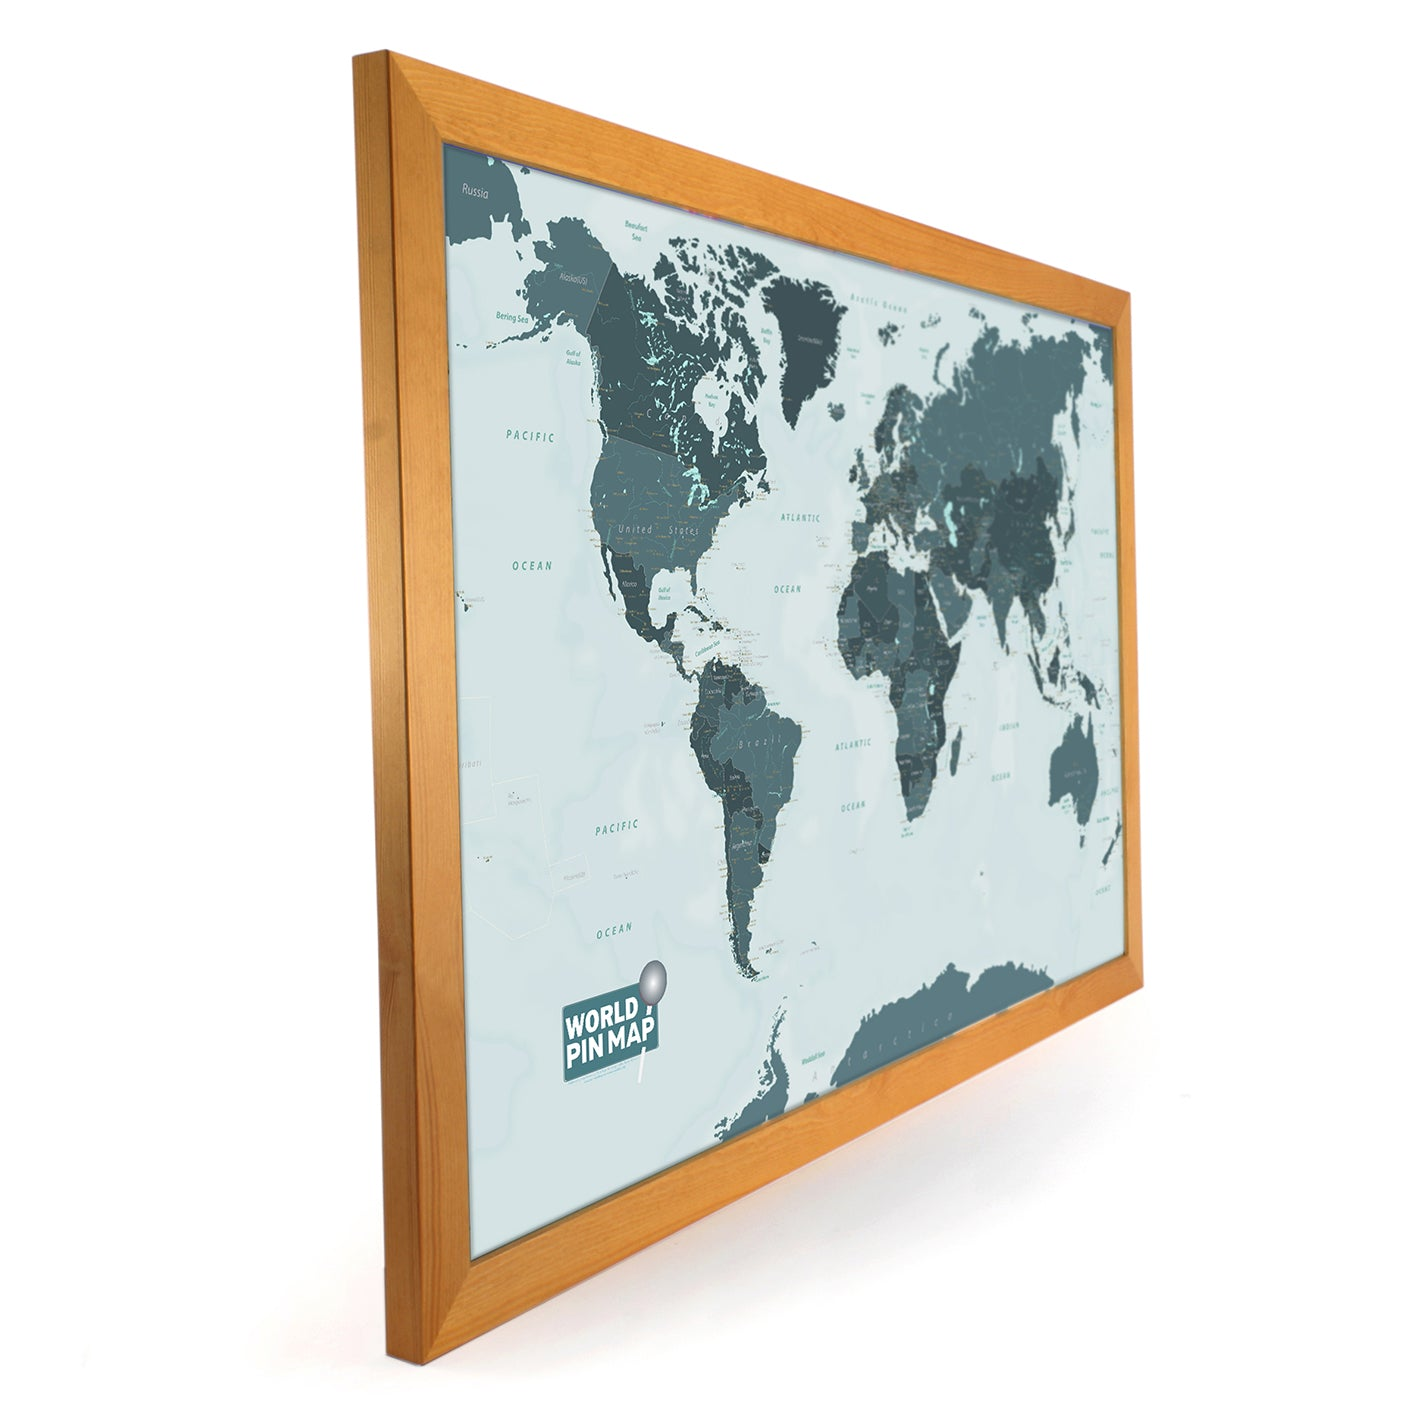 World pinboard map butler and hill map marketing framed world pinboard map gumiabroncs Image collections